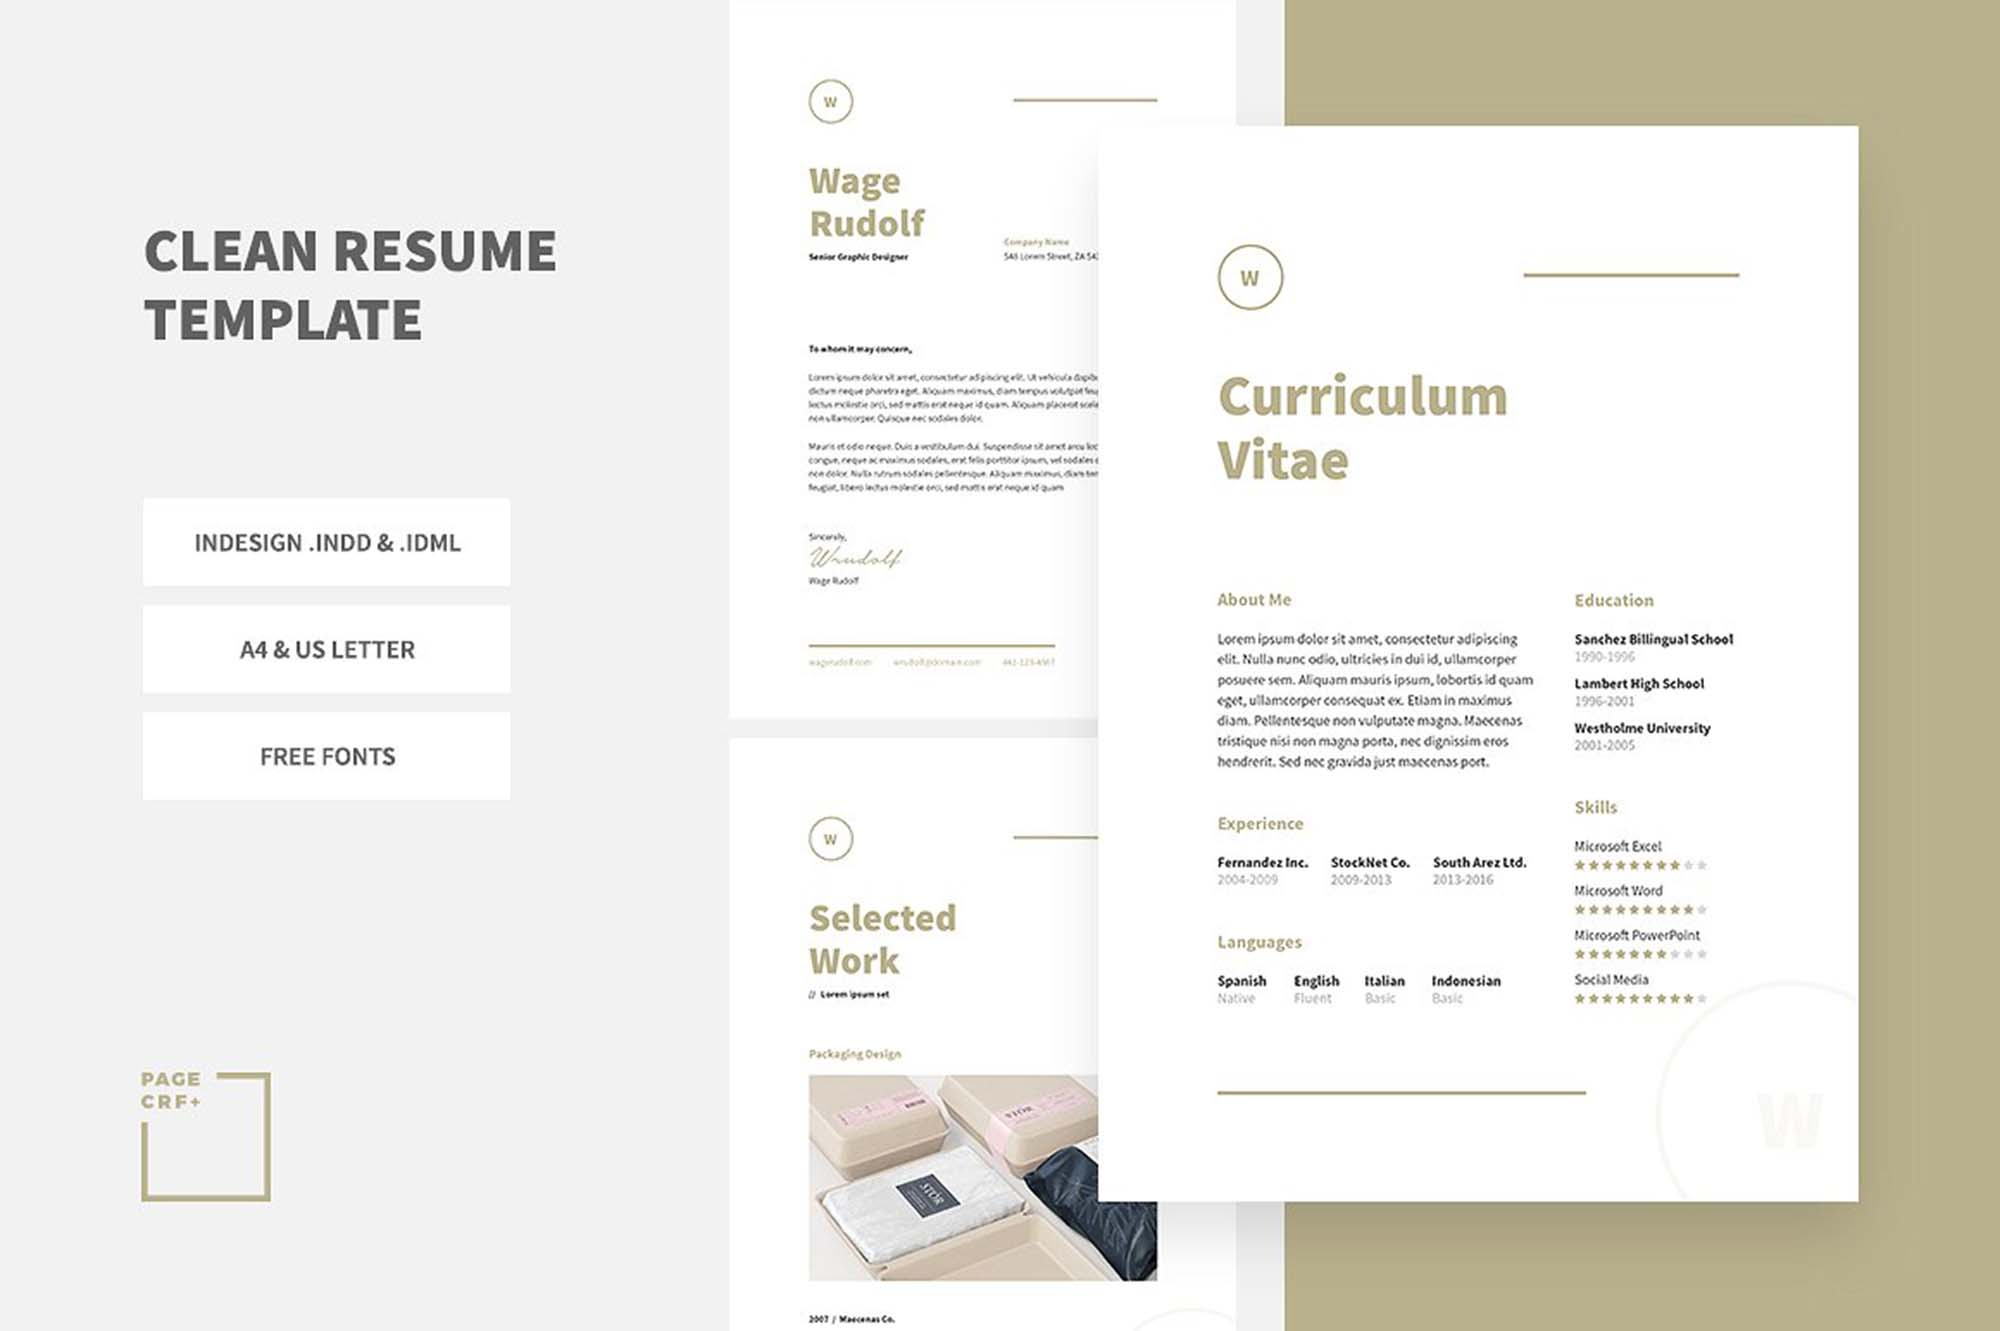 Indesign Resume Template Resume Template indesign resume template|wikiresume.com